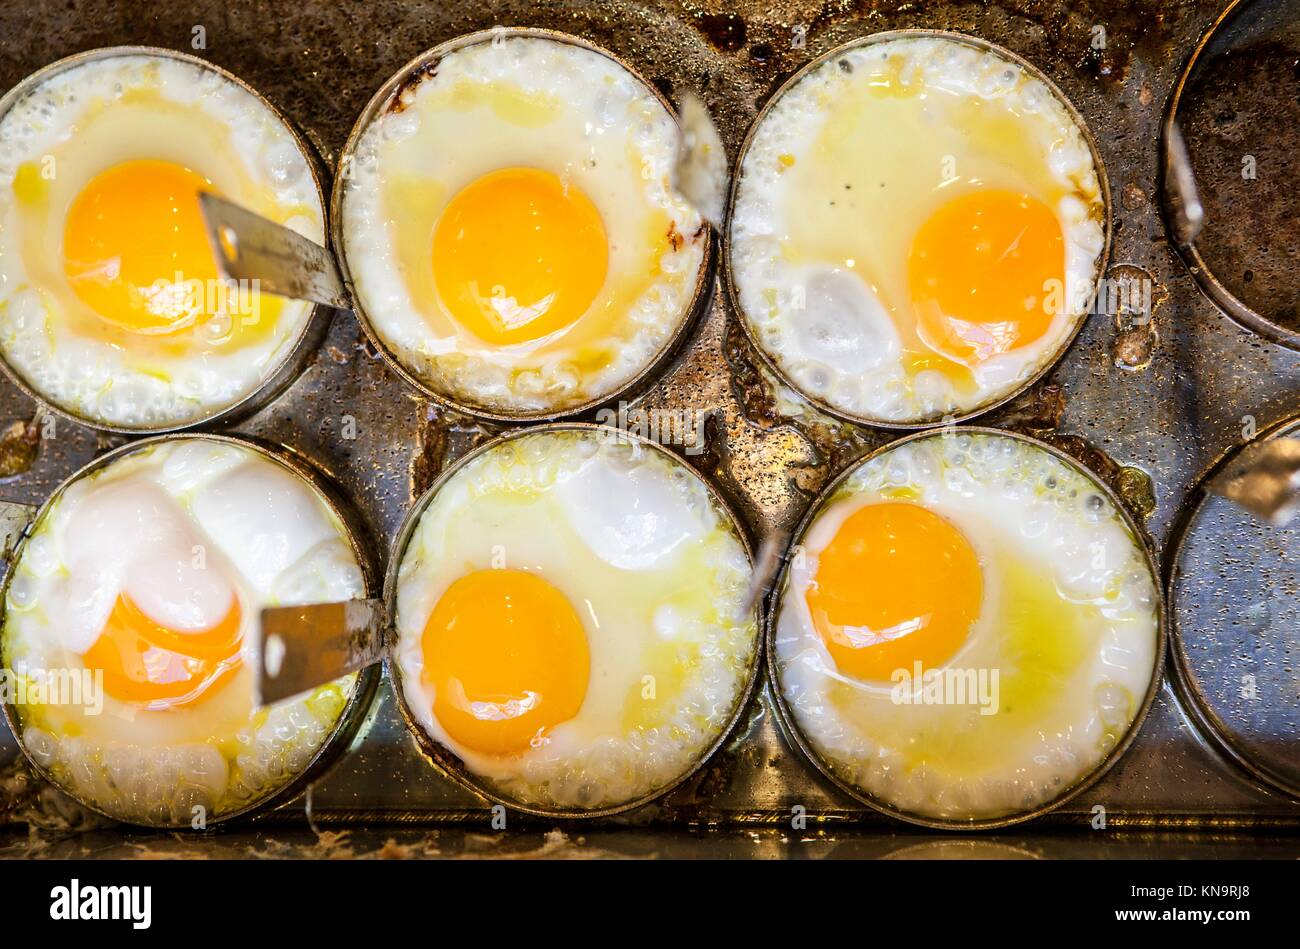 Cooking six fried eggs with moulds on griddle. High angle view. - Stock Image